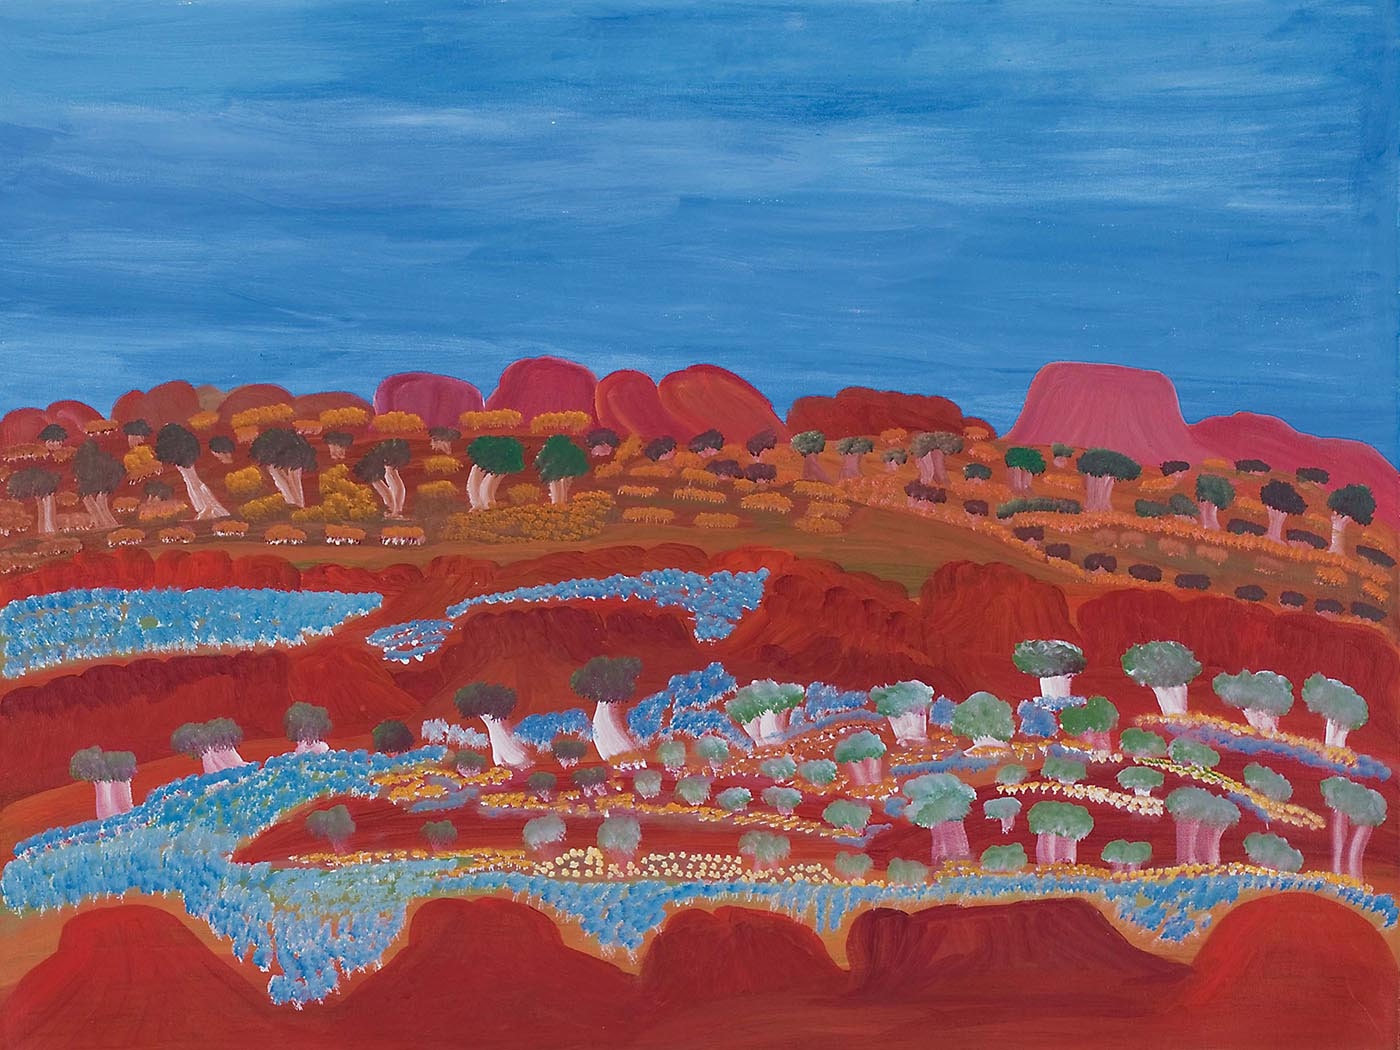 A painting on canvas with a range of orange-red rock formations lying low against a blue sky backdrop. In front of the formations are green and light brown trees and yellow-brown grass-like foliage. In the foreground are two horizontal rows of orange-red rock formations creating a valley-like appearance. The valley and some of the rock formations are covered in expanses of flowers in blue, yellow and cream as well as trees in green and beige-white.